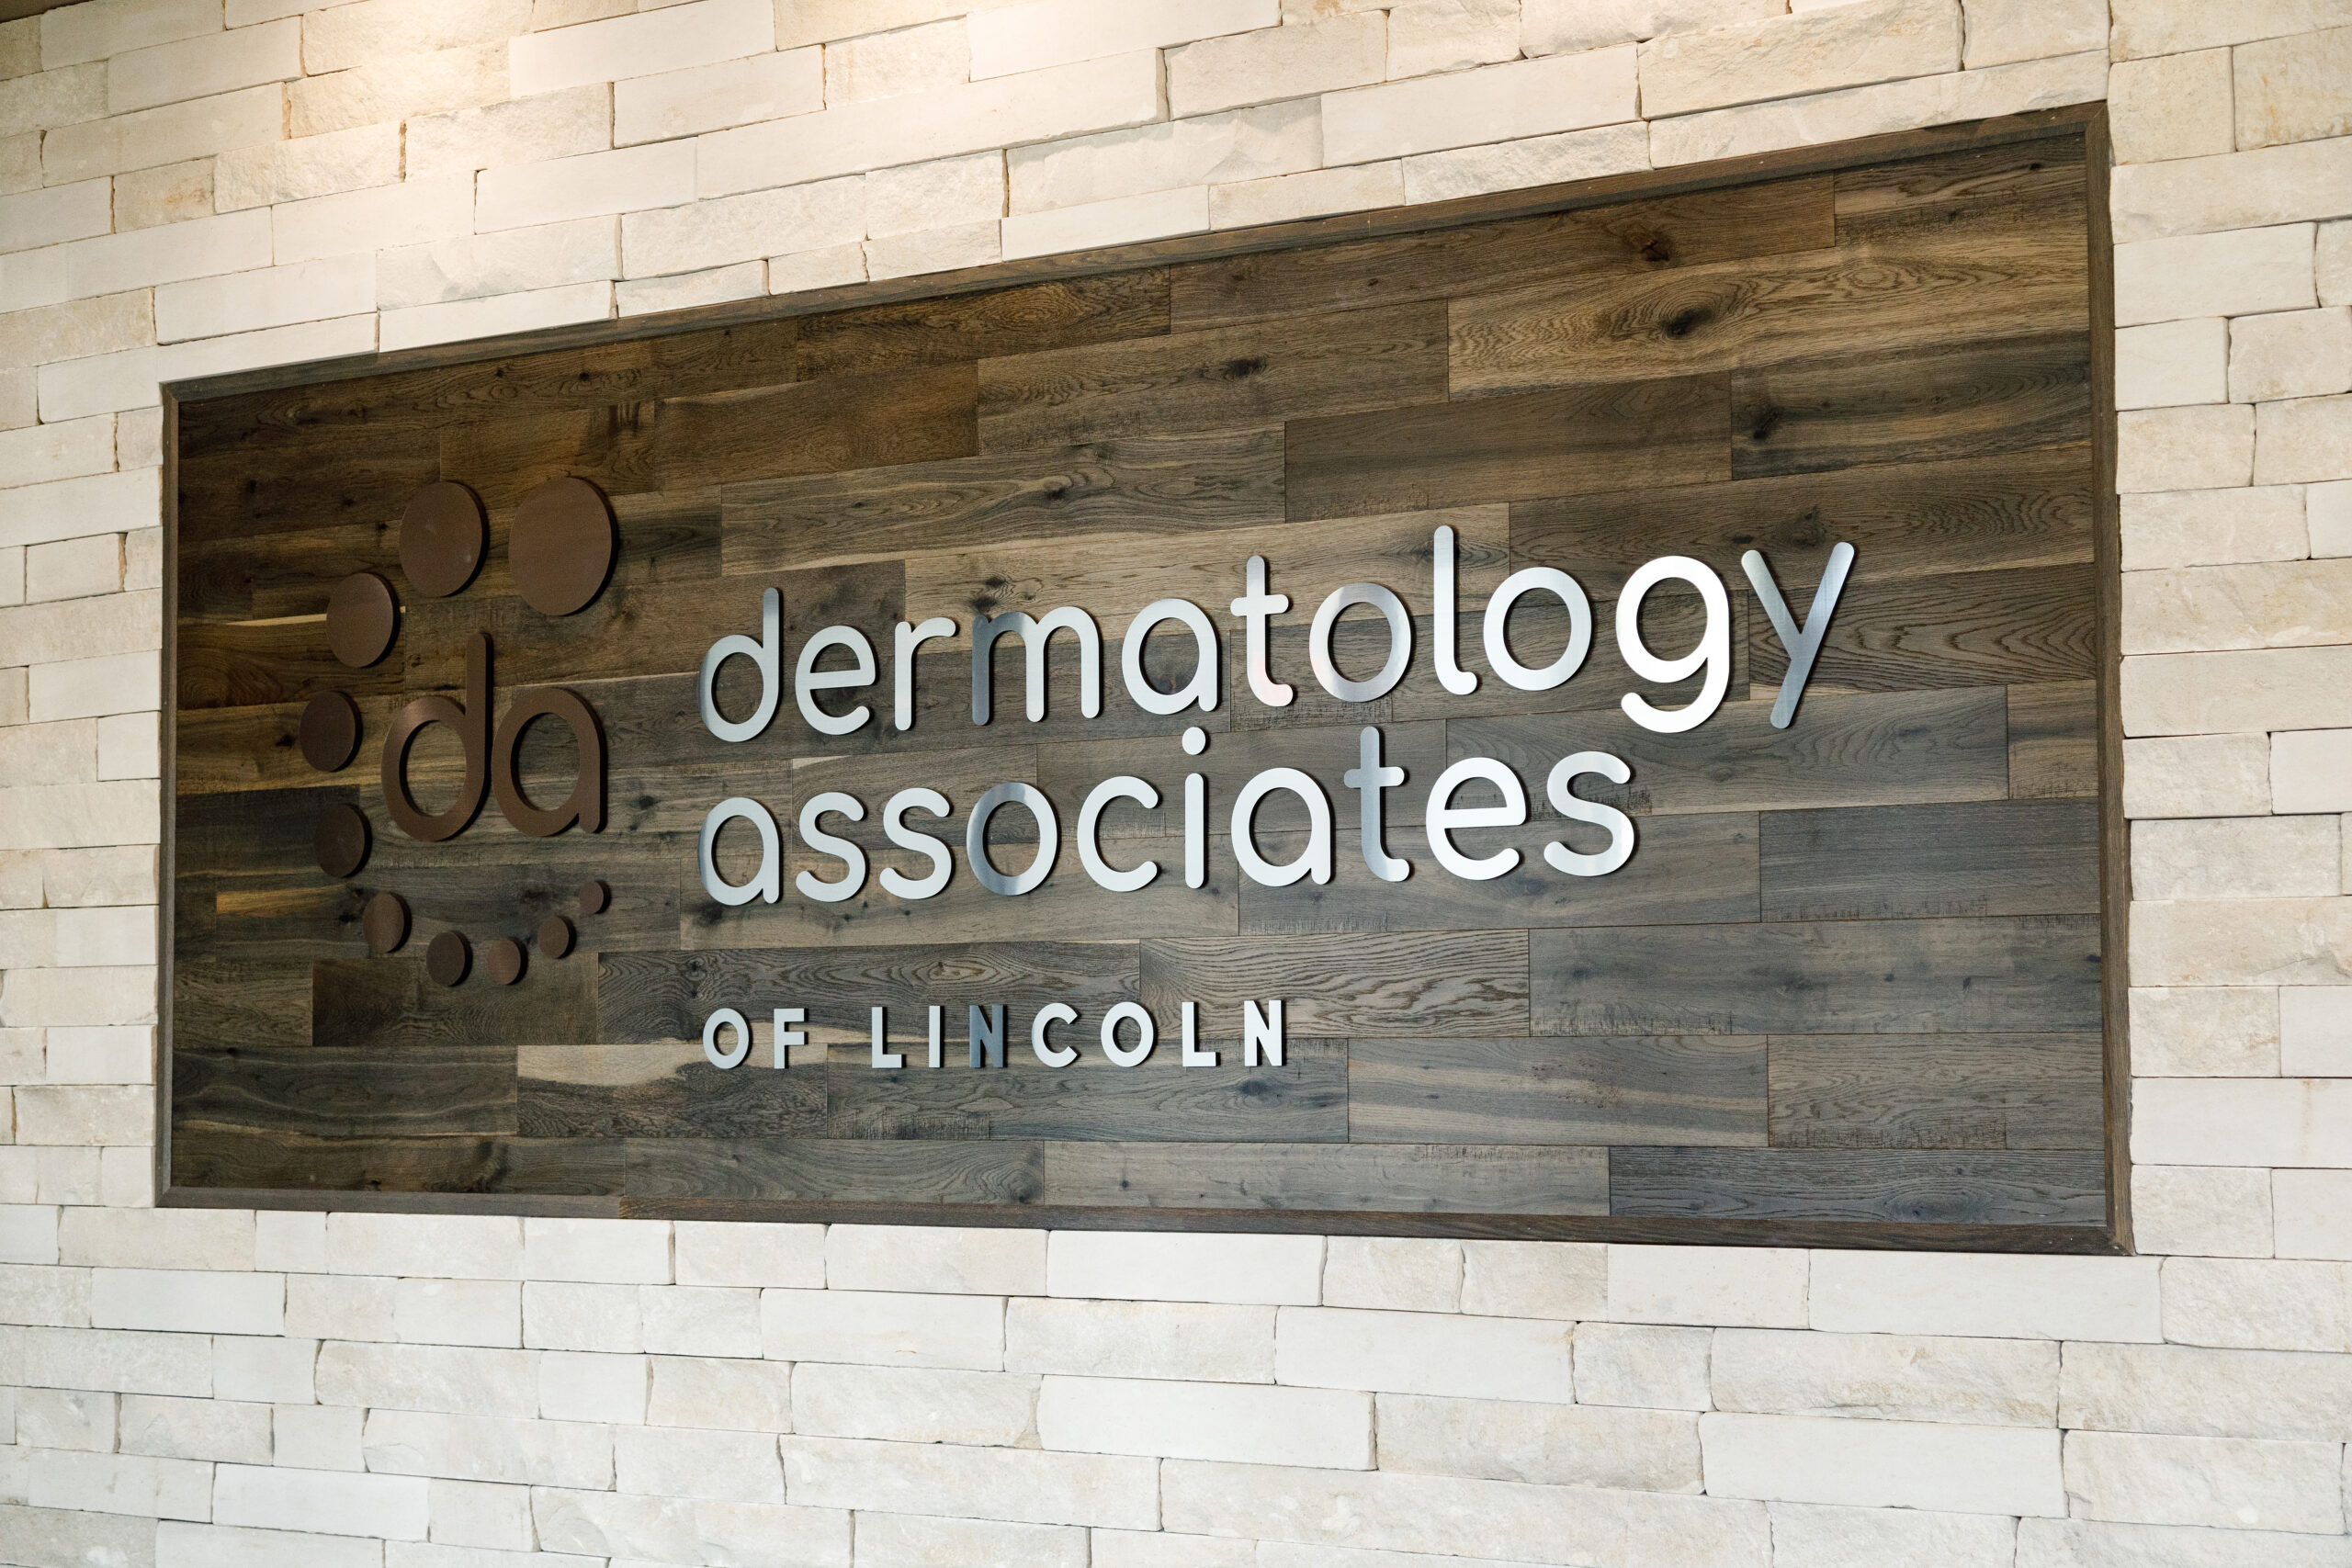 Dermatology Associates of Lincoln, LLC